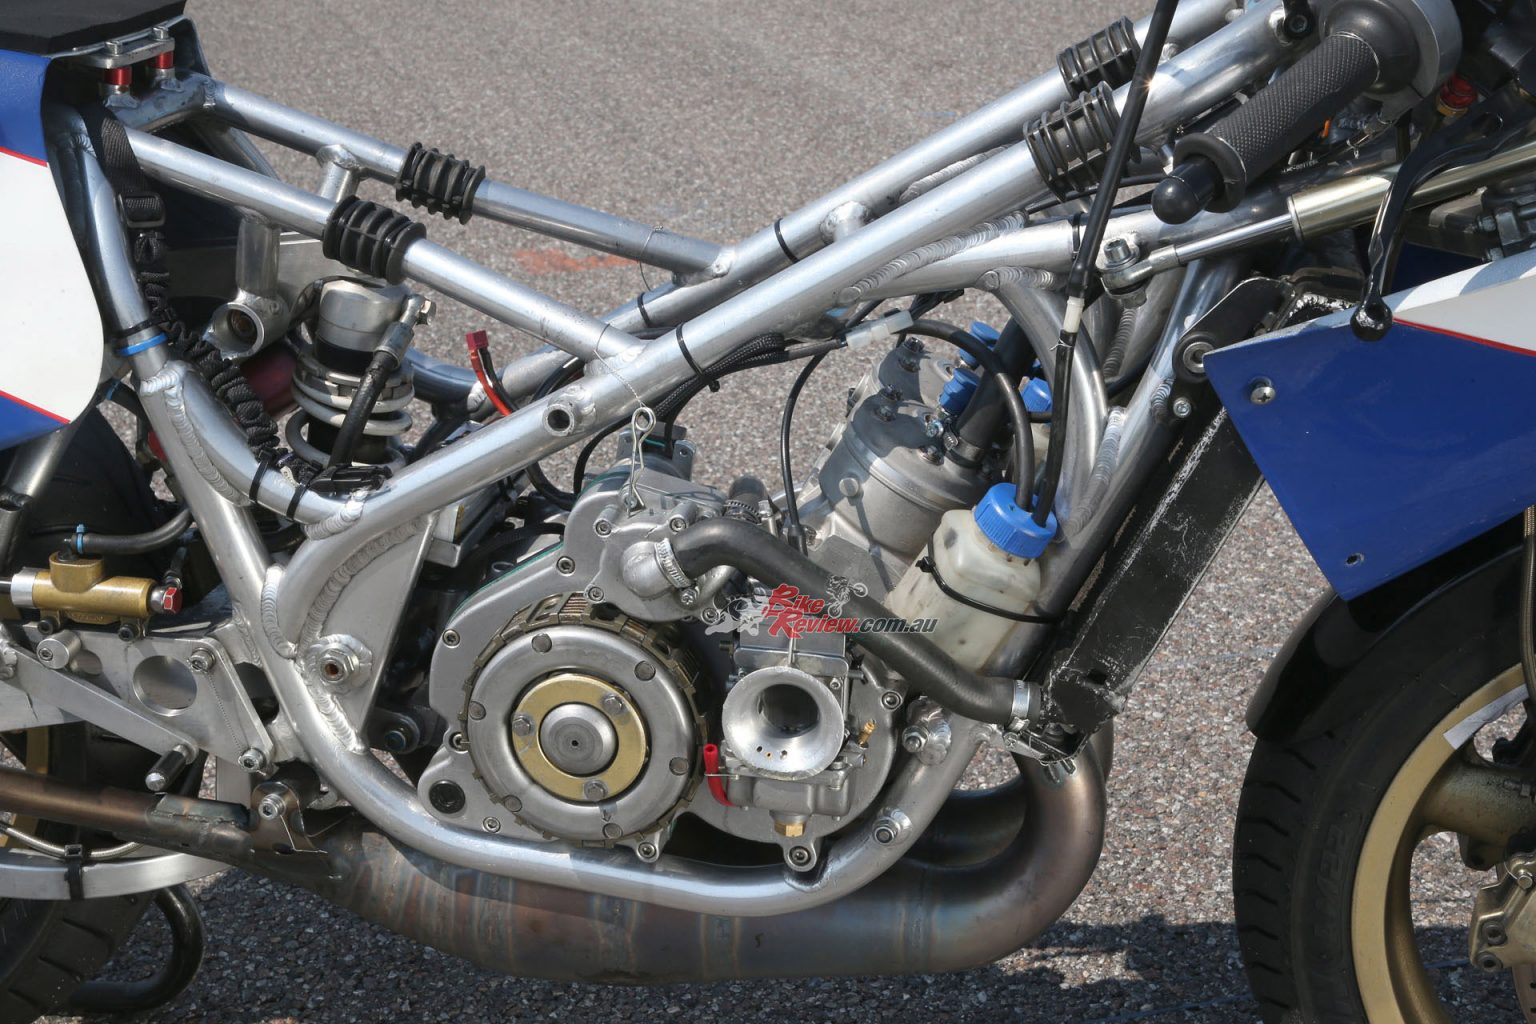 Throwback Thursday: REG 250, the first twin-cylinder 250GP